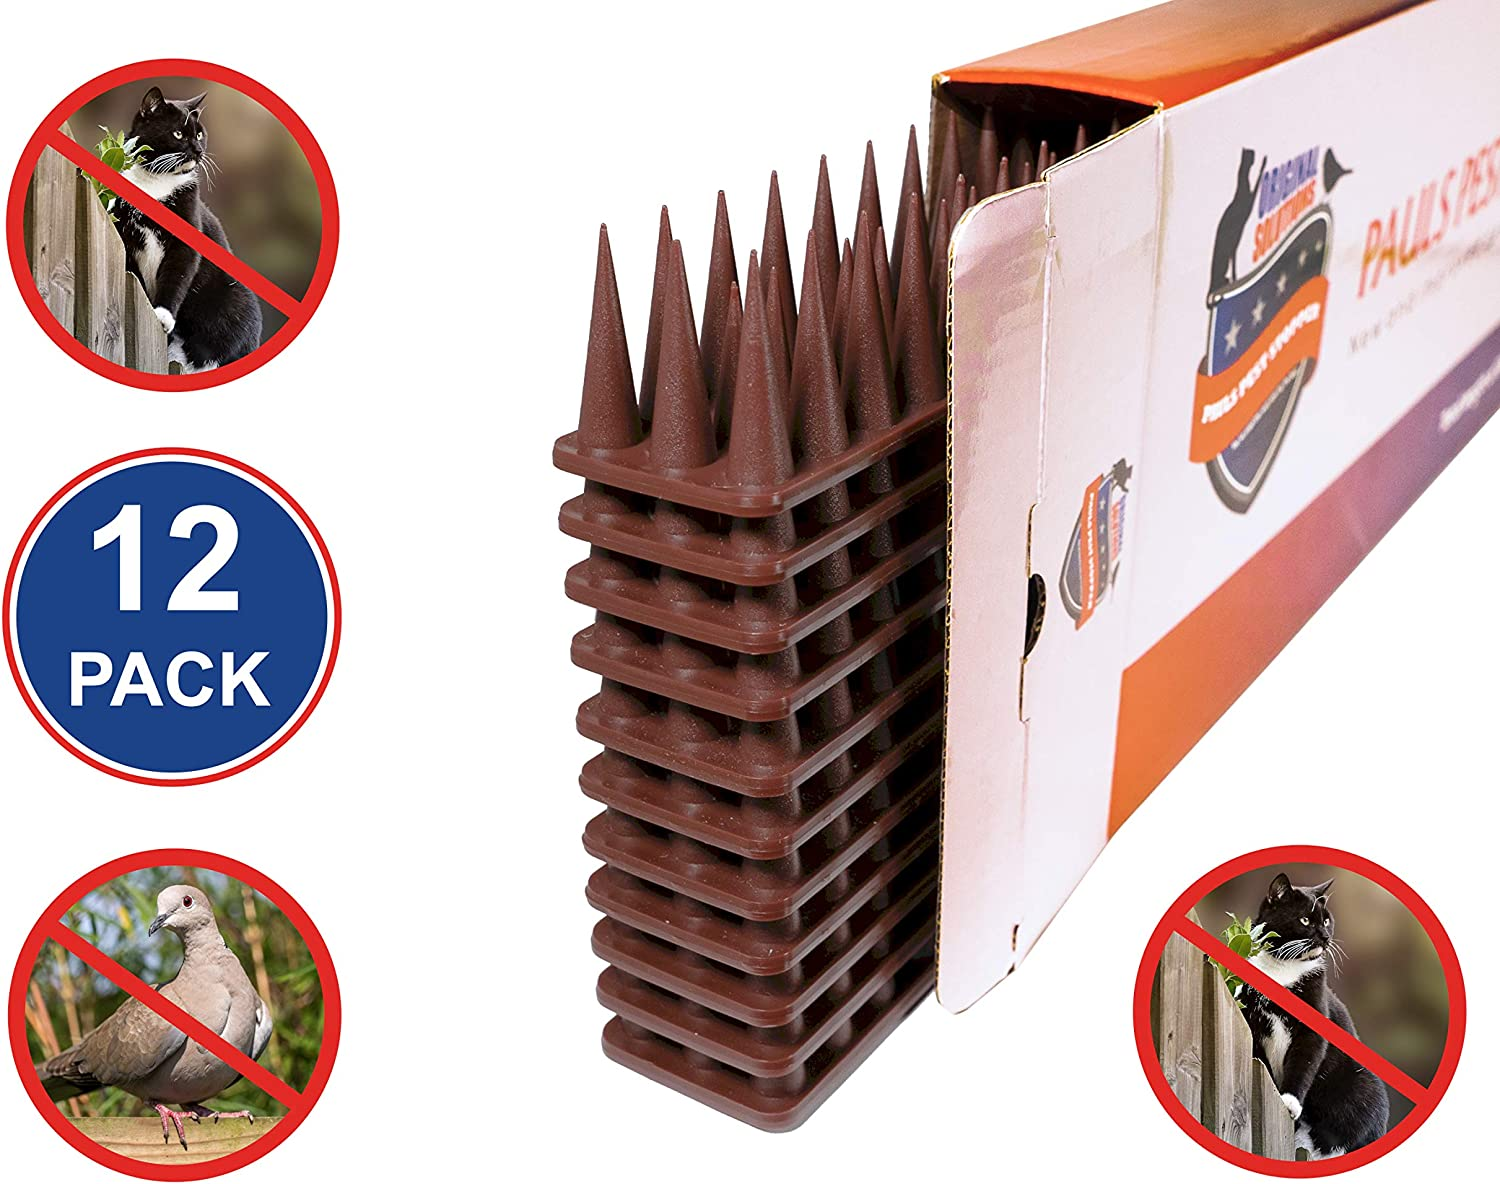 Original Solutions [Upgraded] Defender Spikes Cat and Bird Deterrent Outdoor Anti-Climb Security Pigeon Repellent Strips - 12 Pack [16.97FT]